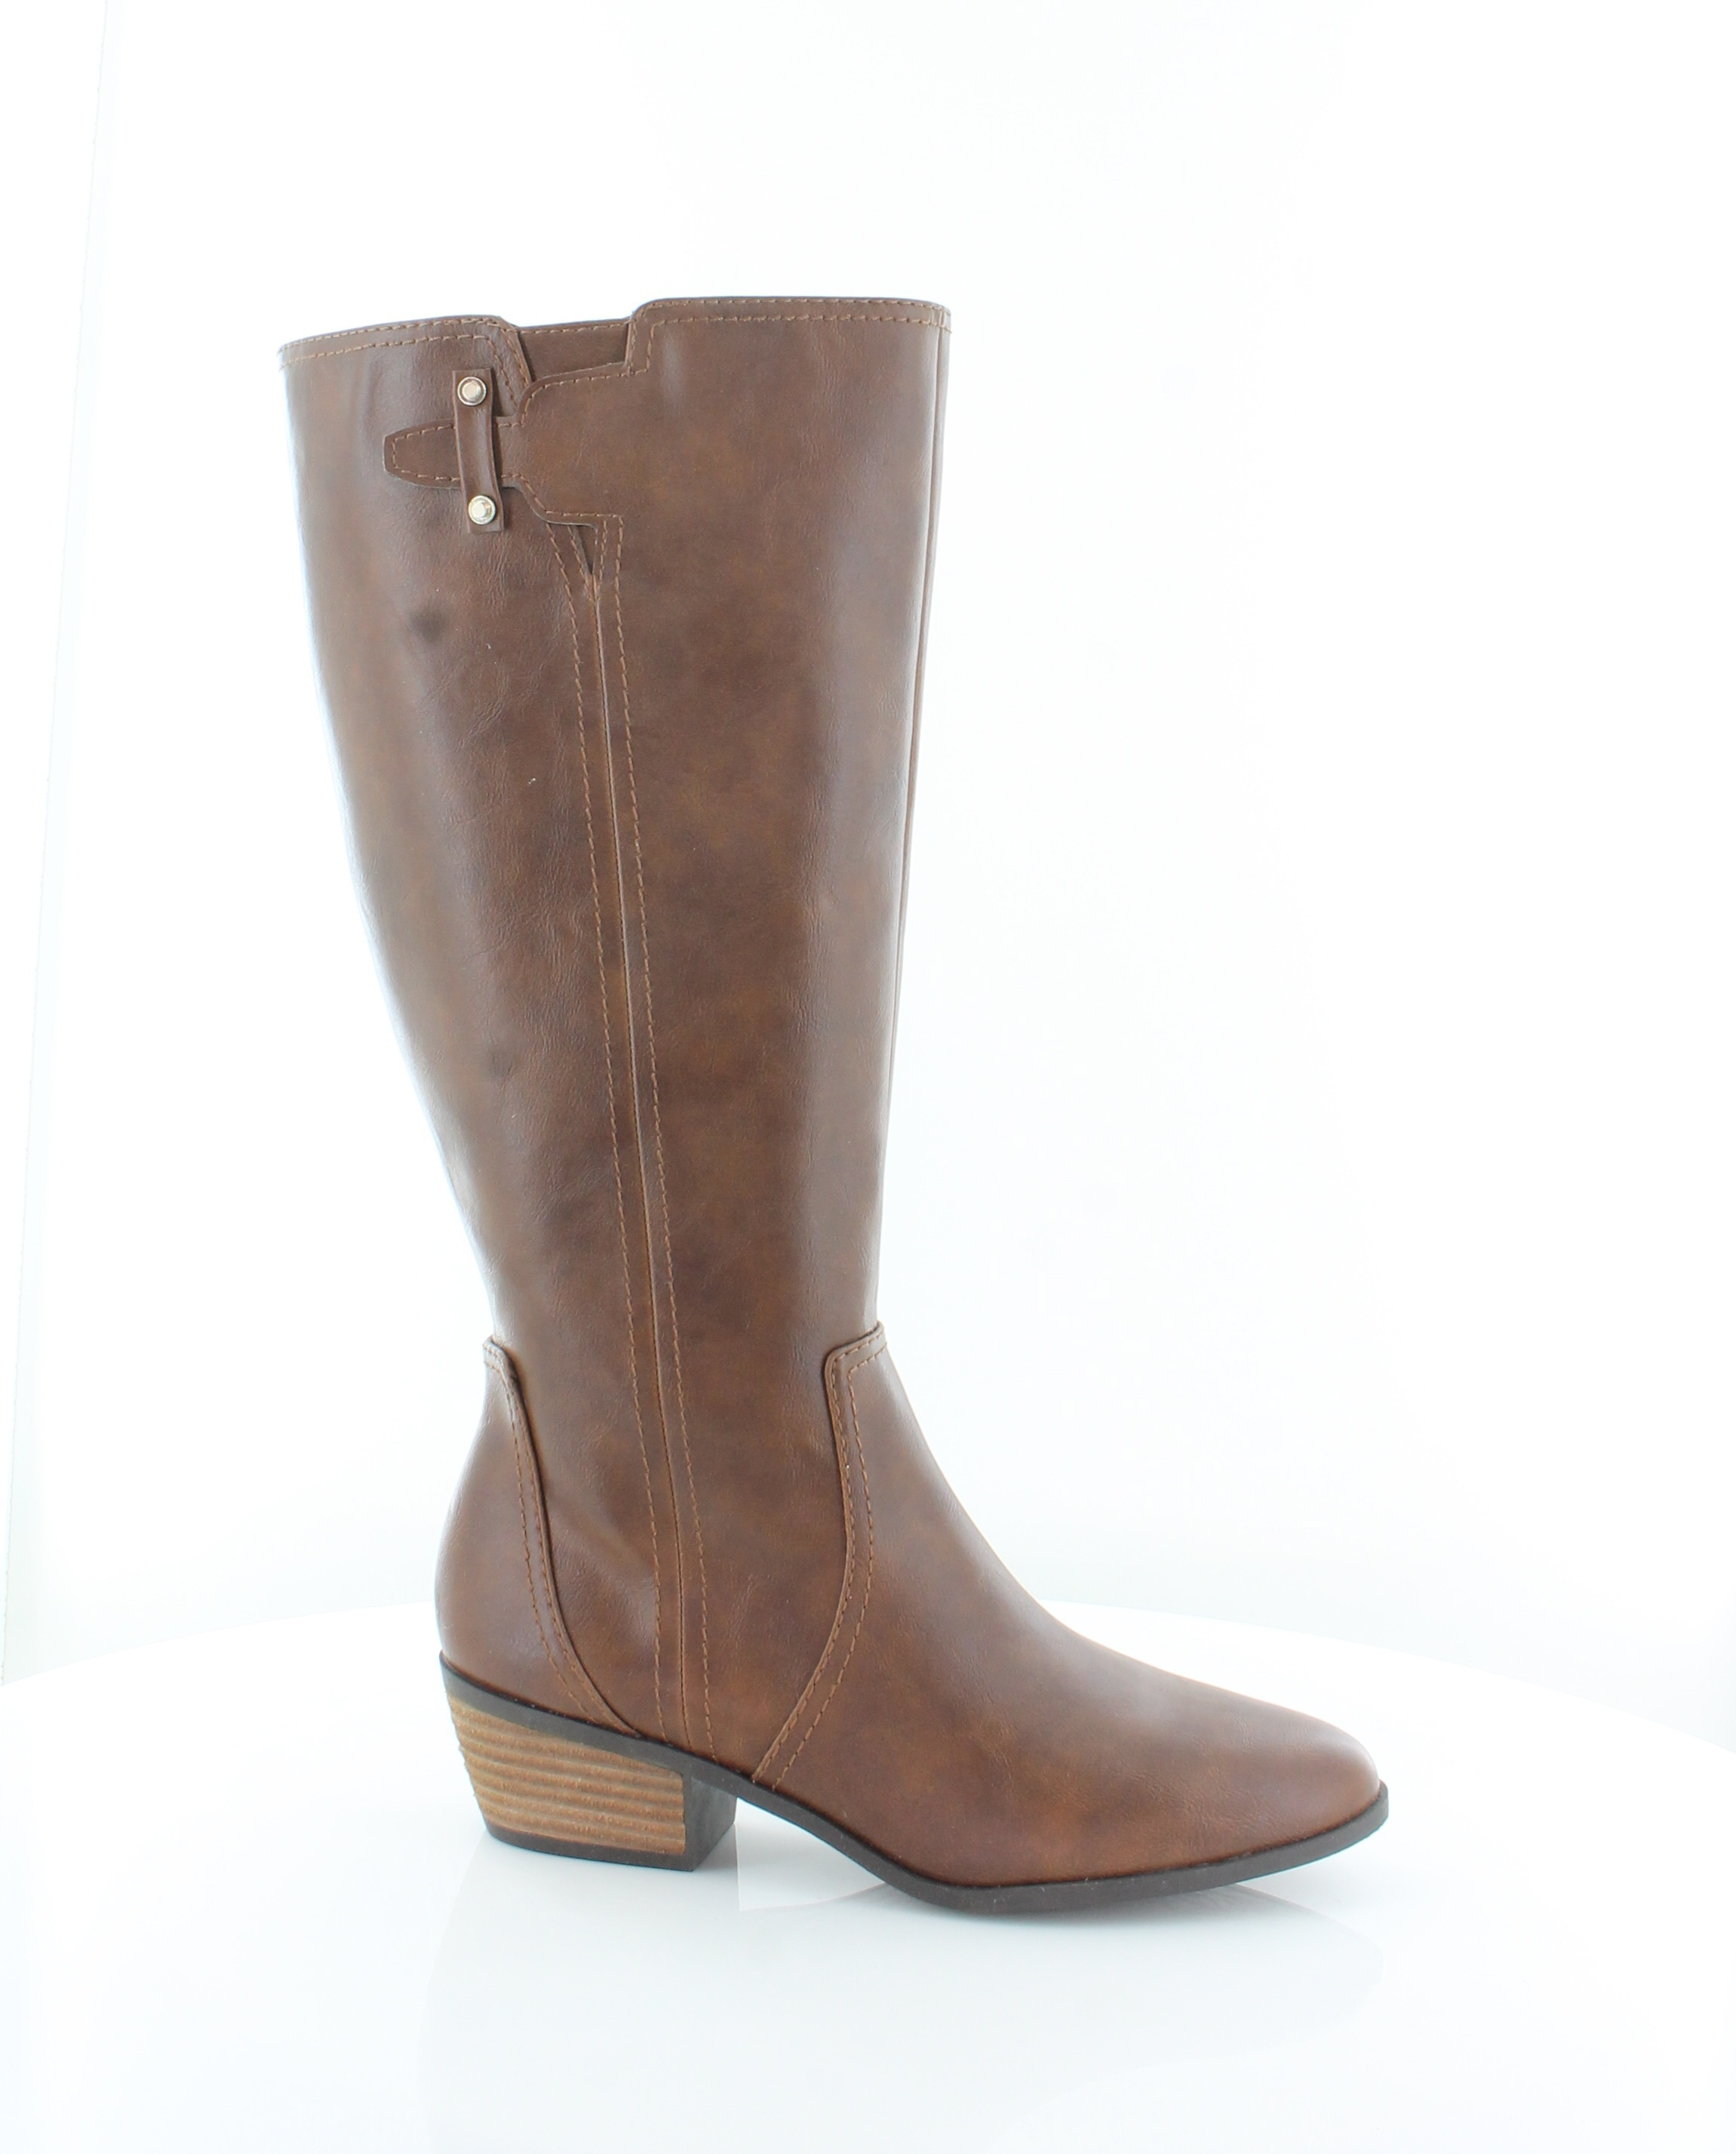 Dr. Scholl's New Brilliance Brown Womens shoes Size 8.5 M Boots MSRP